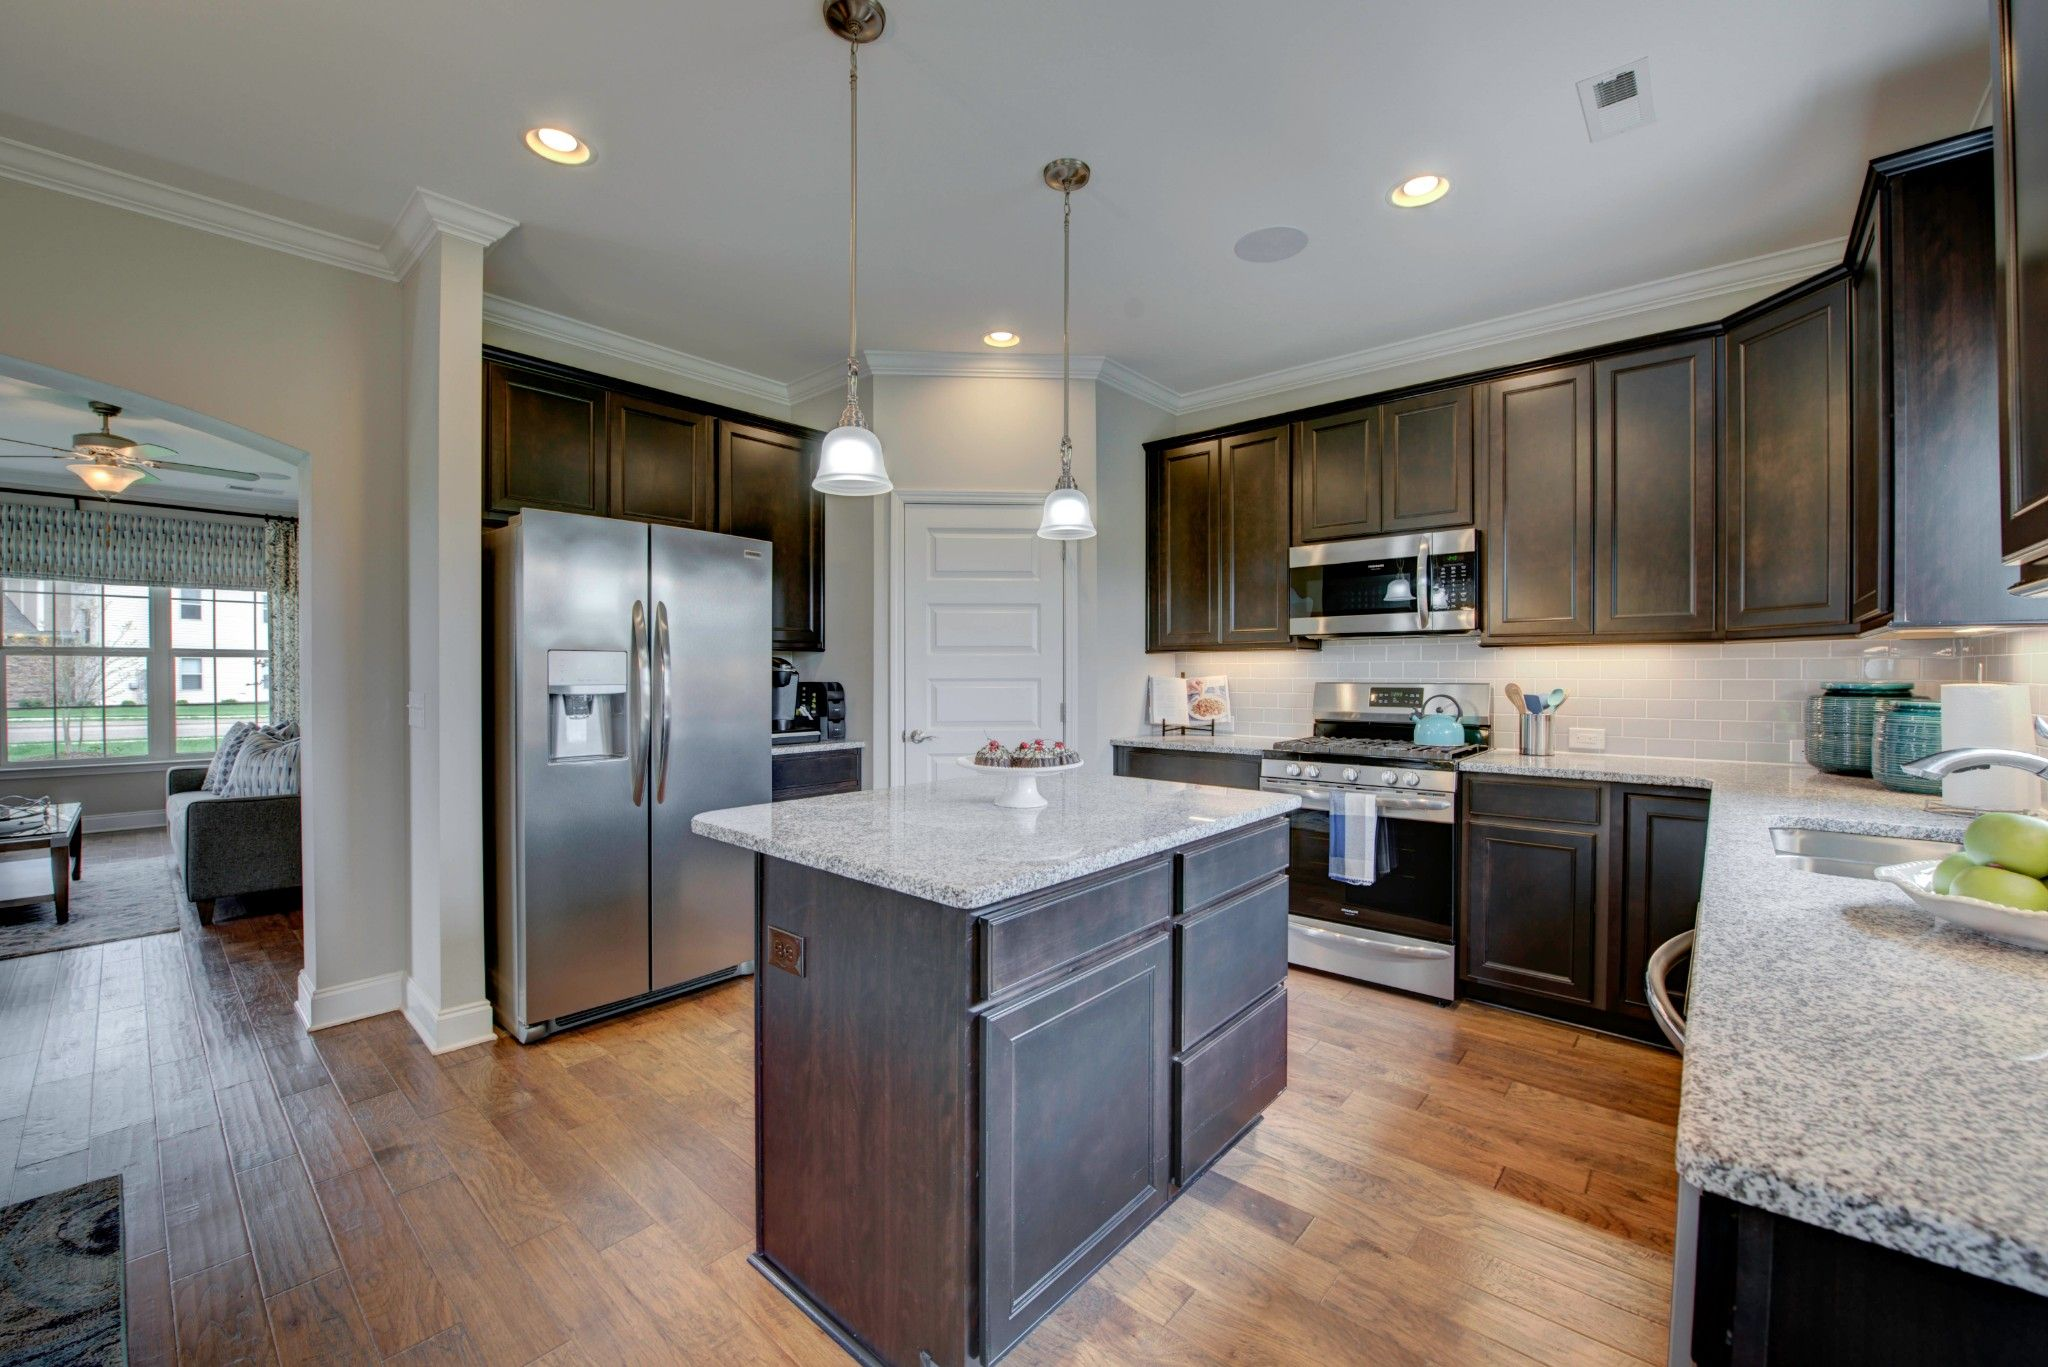 Kitchen featured in The Eliot By Goodall Homes in Nashville, TN